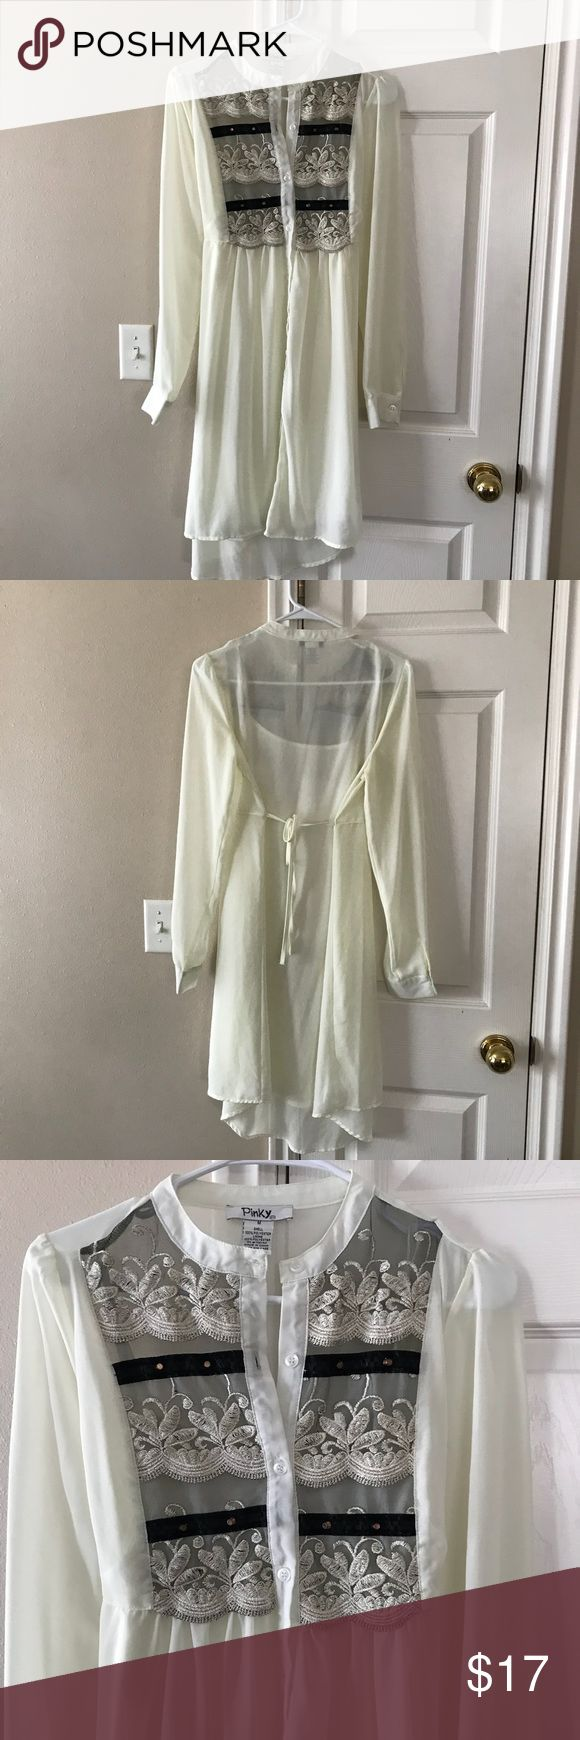 Never worn cream lace dress Never worn cream lace dress. Goes past the knees and is flowly and comfortable. Coming from a smoke free, pet free home. Bundle and save. Make me an offer! Pinky Dresses